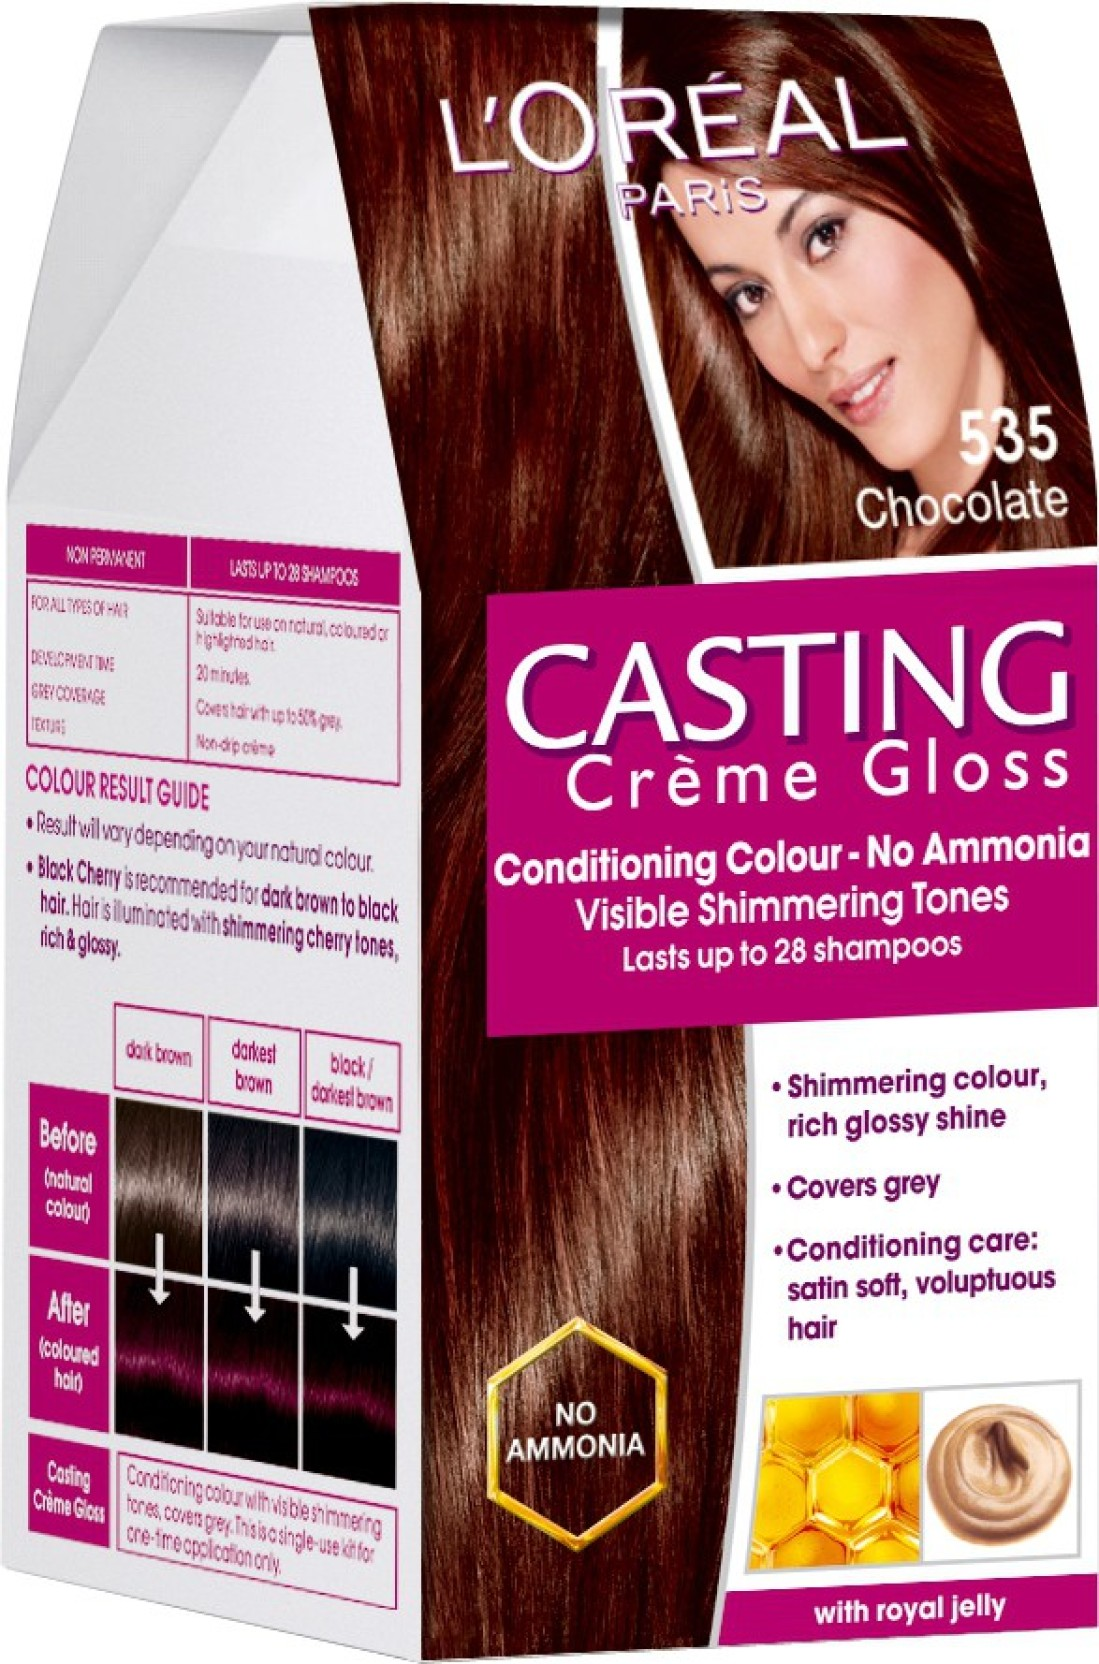 L Oreal Paris Casting Creme Gloss Hair Color Price In